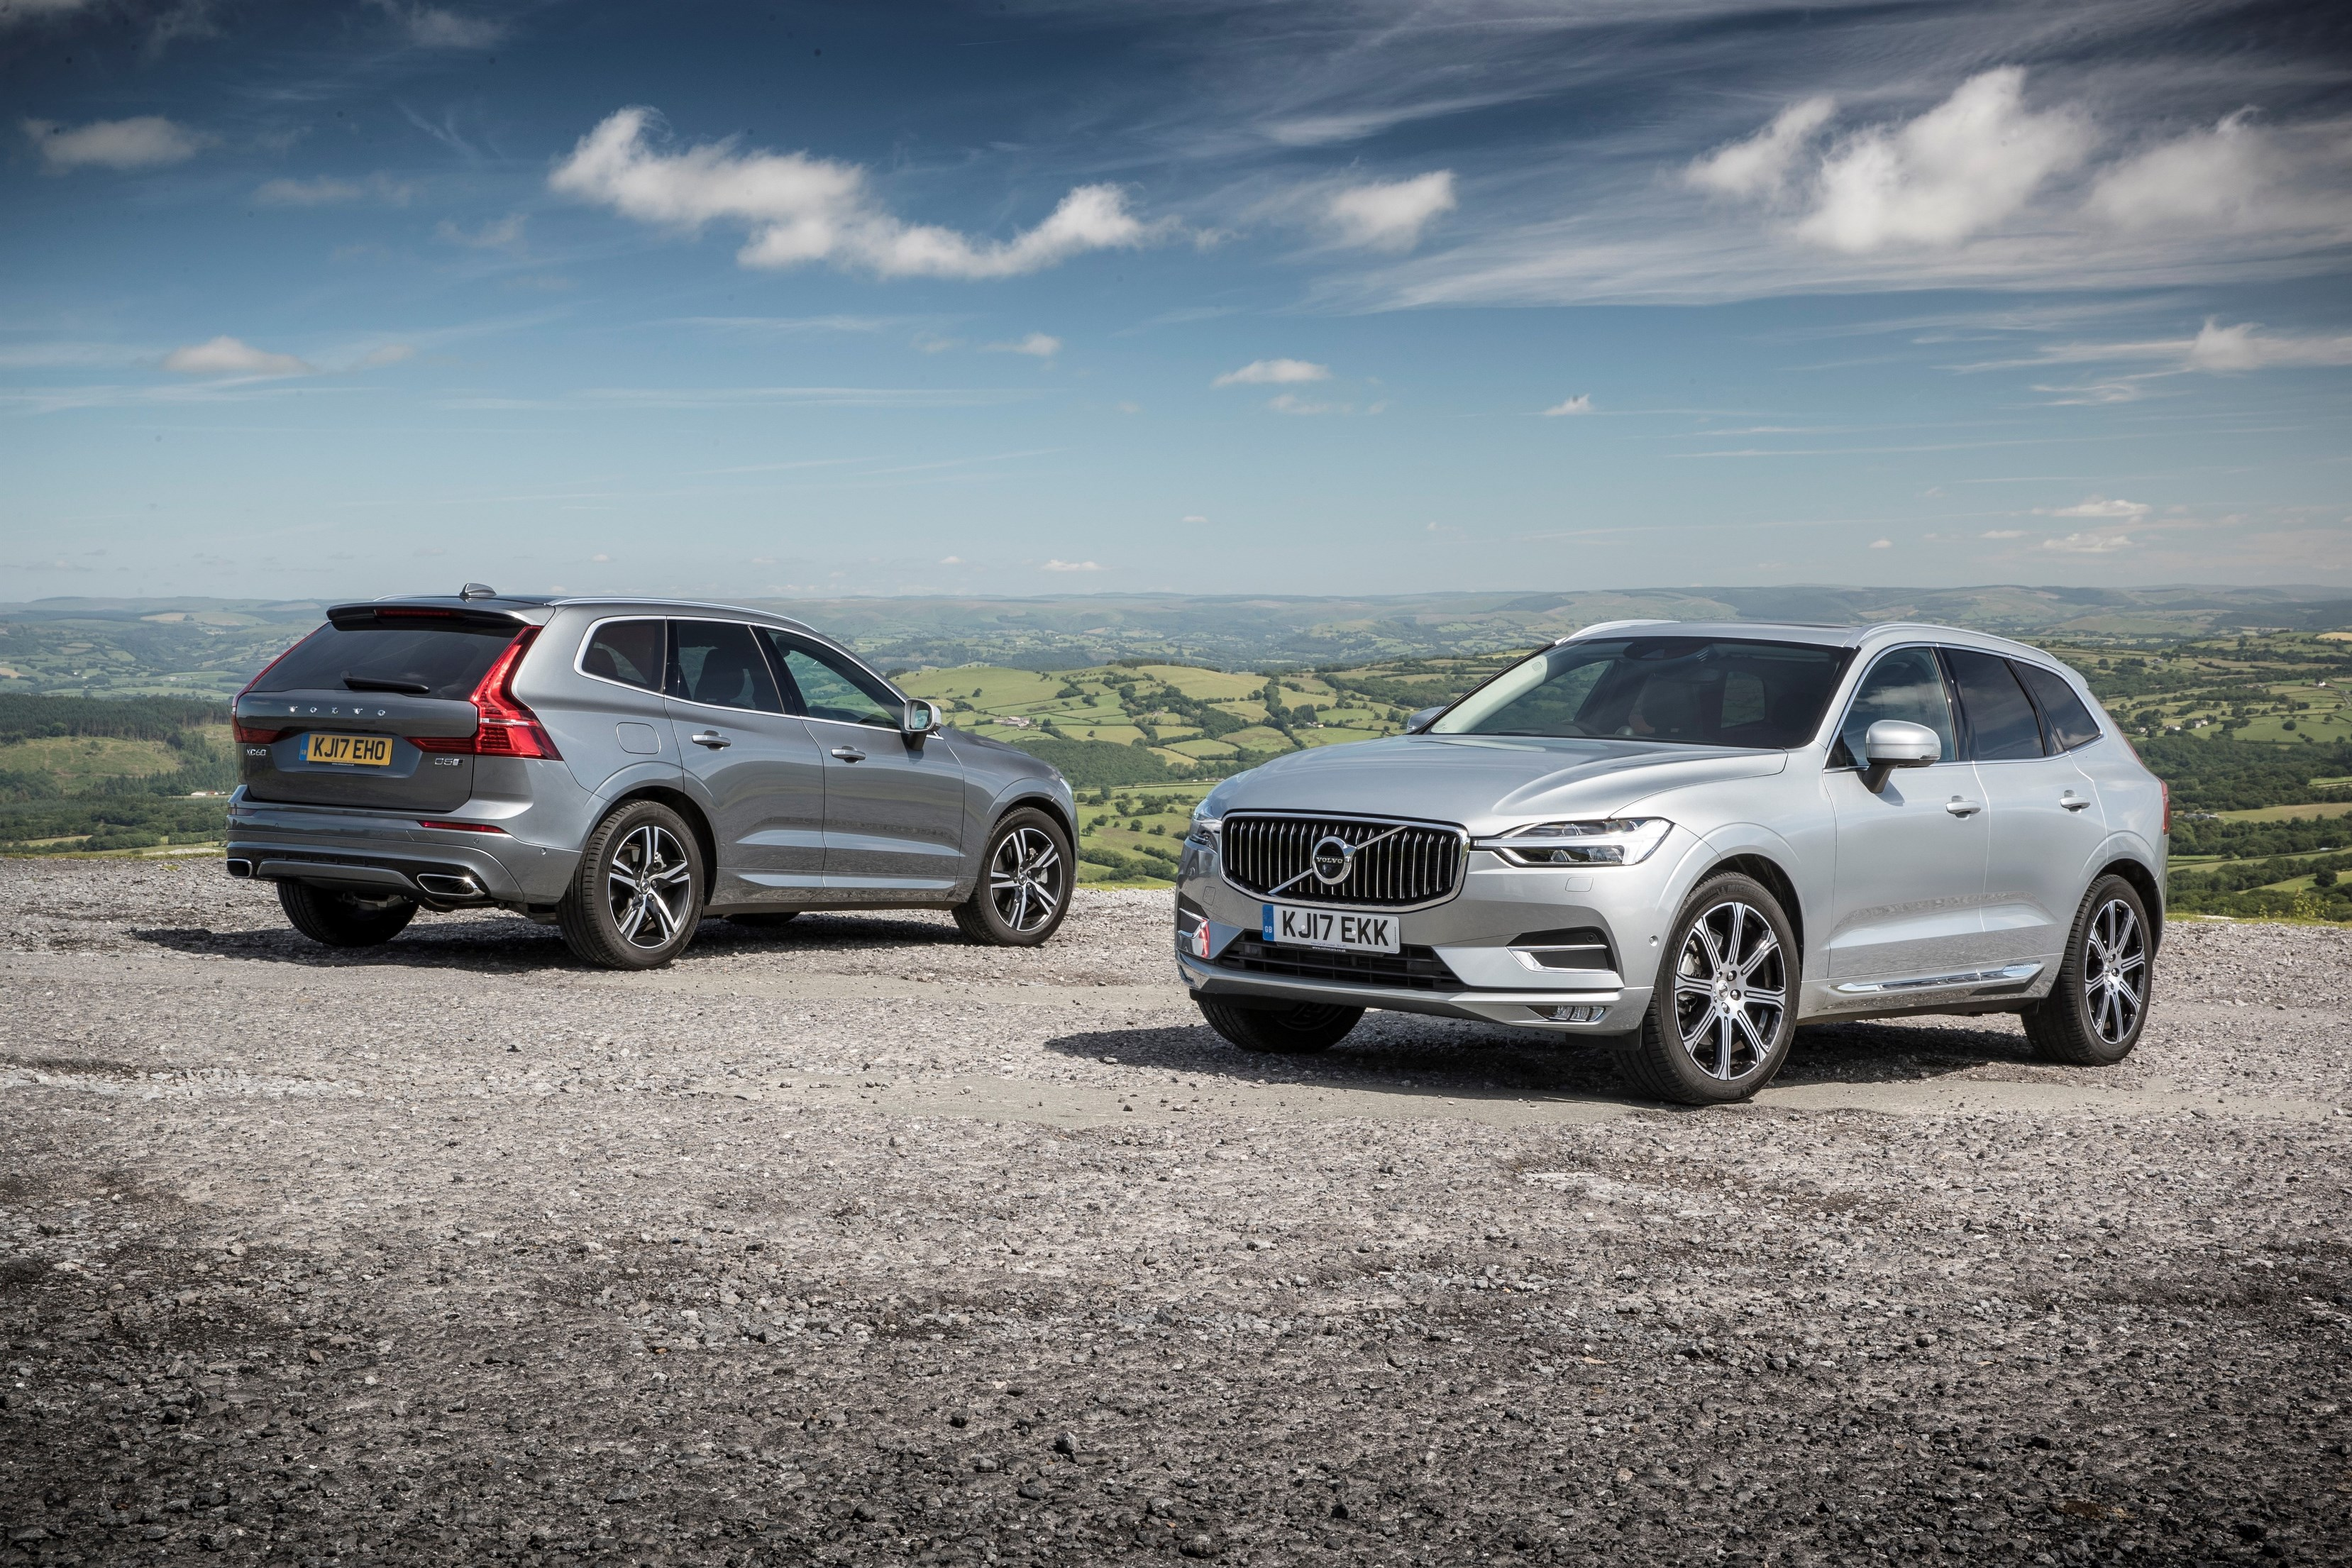 For the euro spec model four flavors of the xc60 can be upgraded these are the d4 d5 t5 and the top of the range t8 twin engine